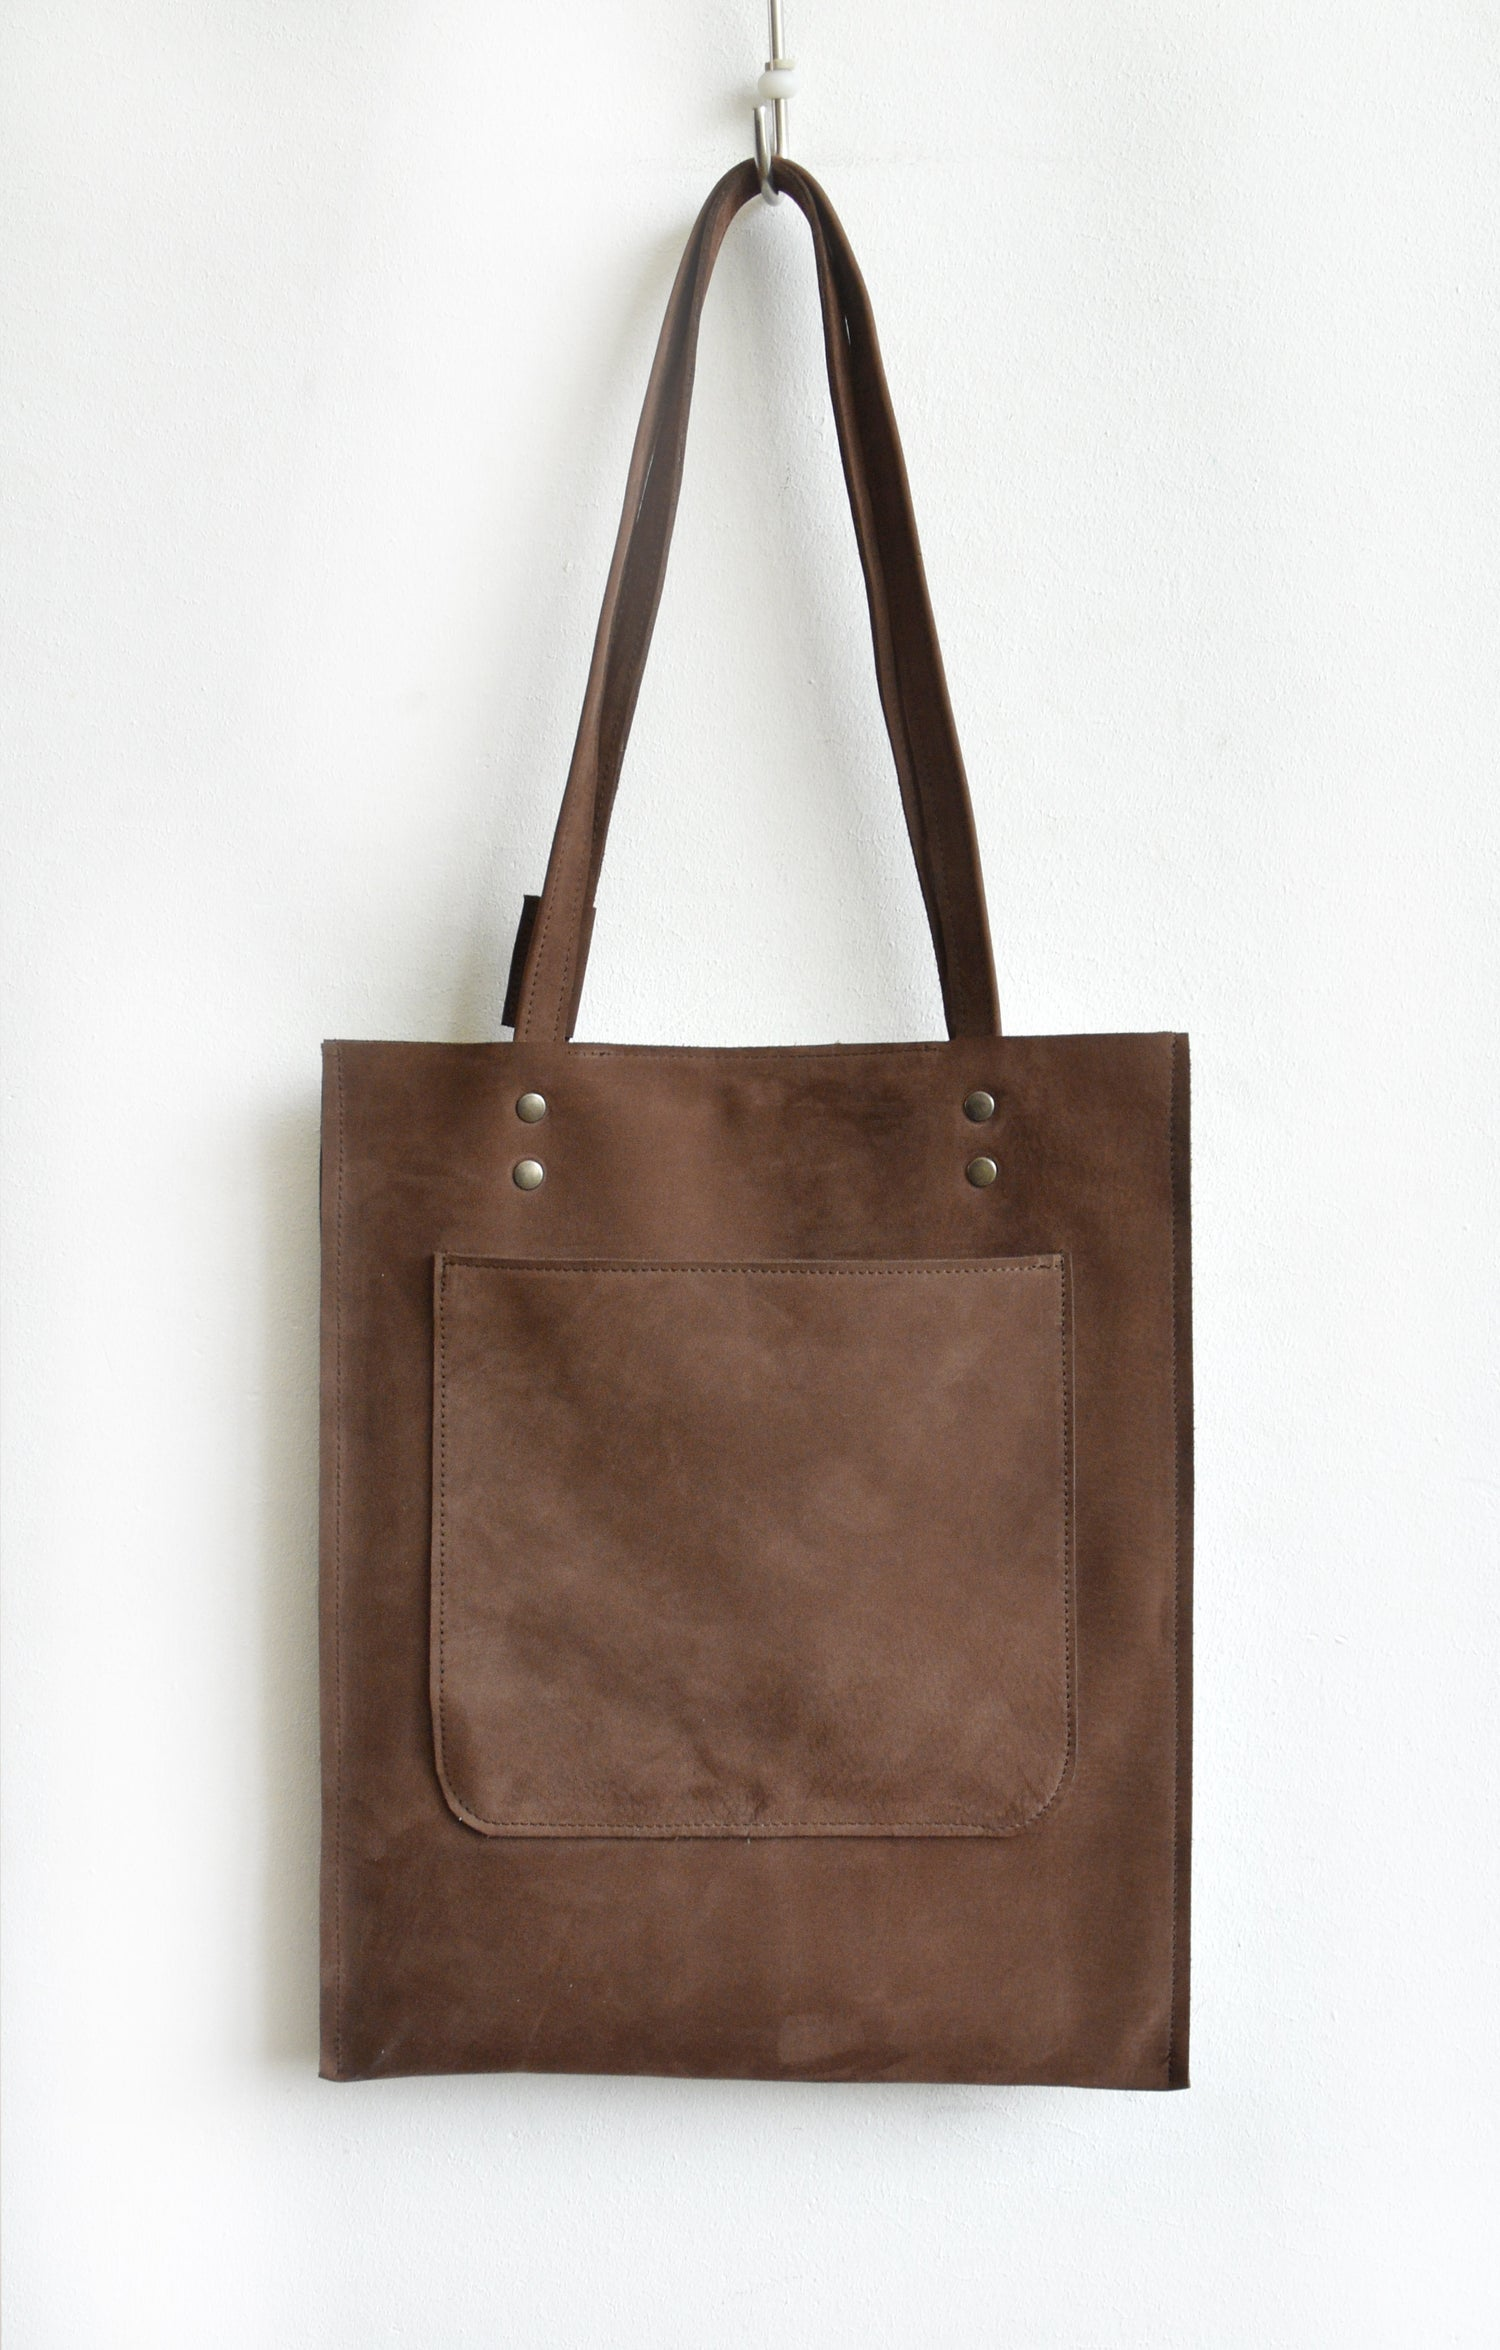 Image of Brown Nubuck Tote Bag, Velvety Shoulderbag,